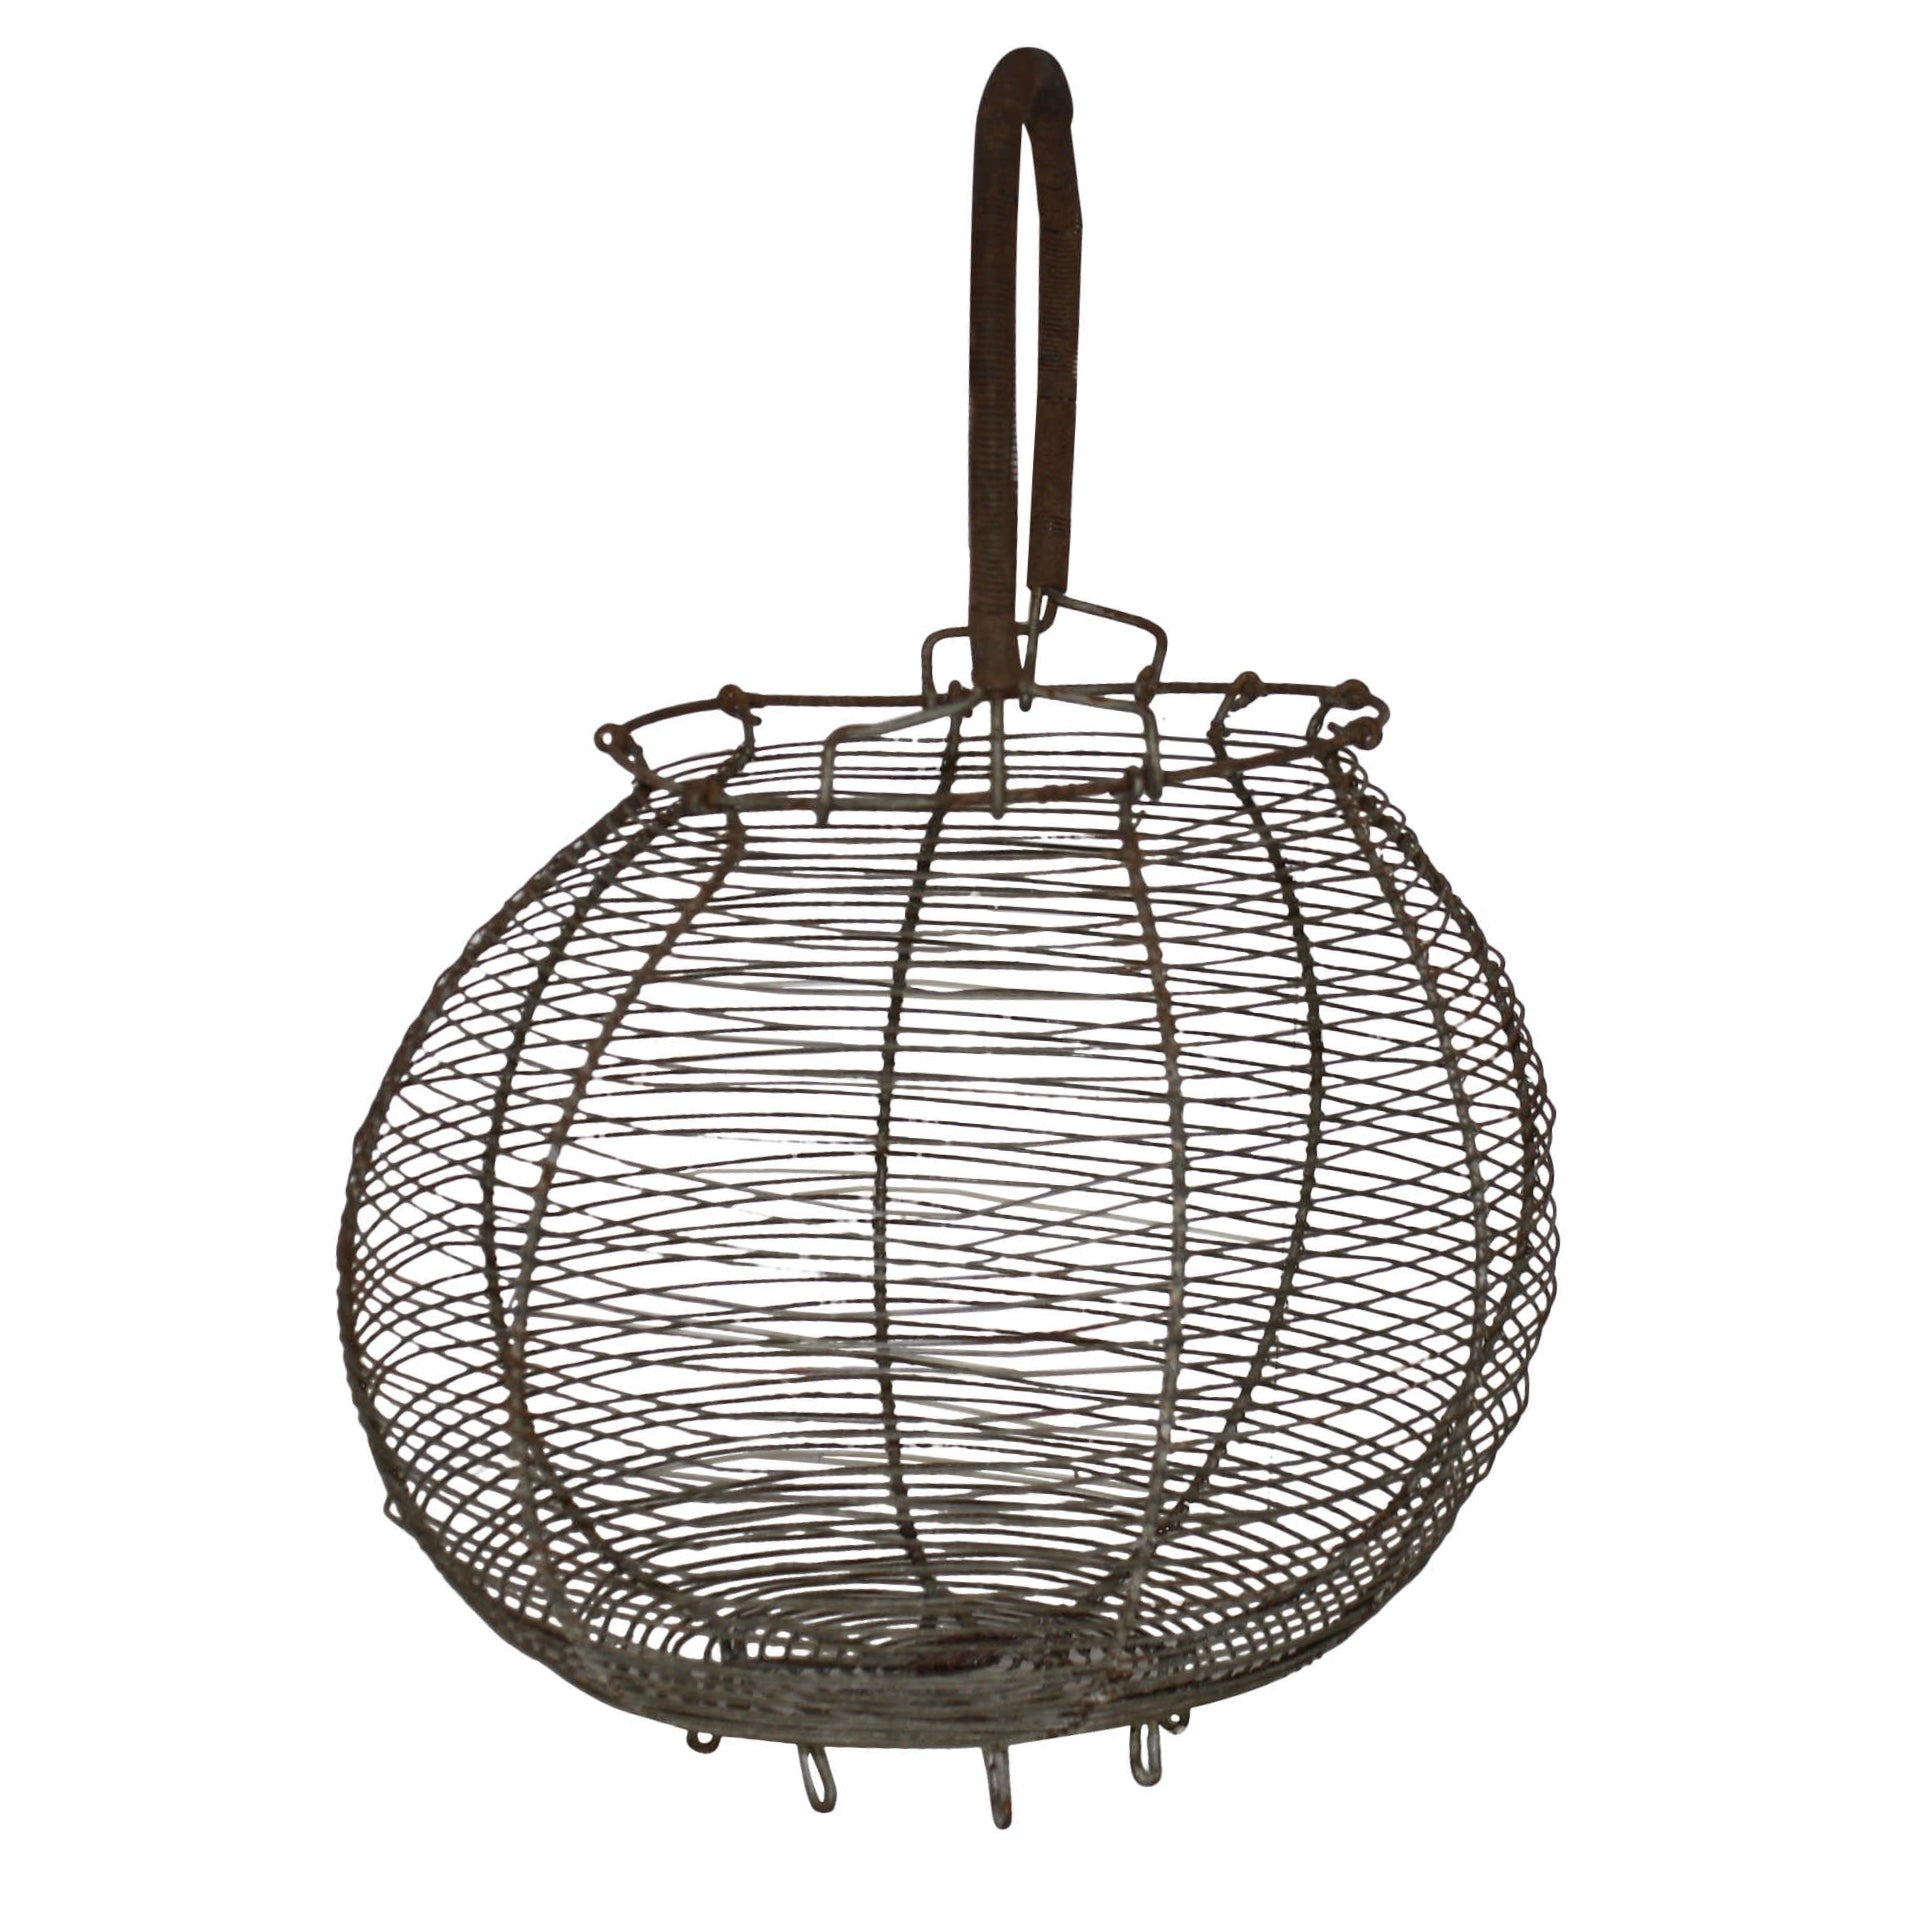 French Wire Egg Basket - Ski Country Antiques & Home